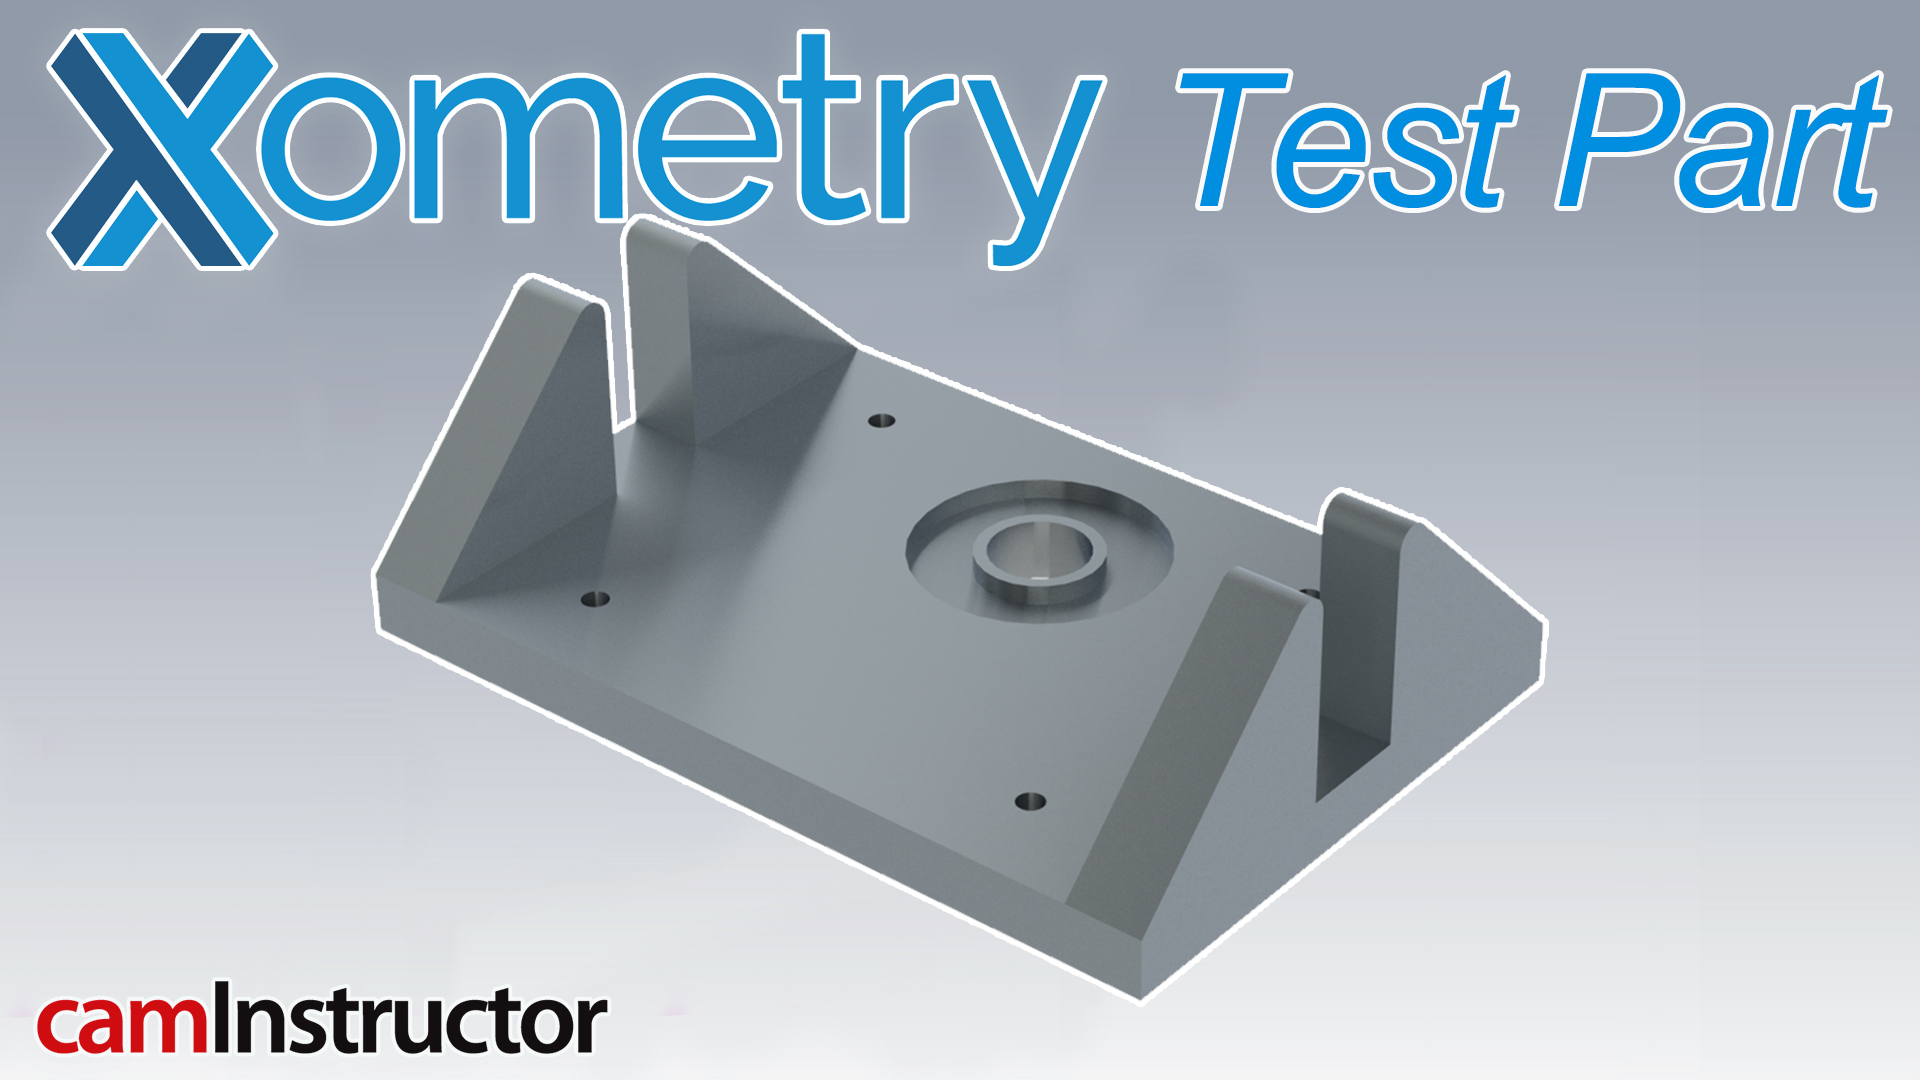 Xometry Mill - Overview